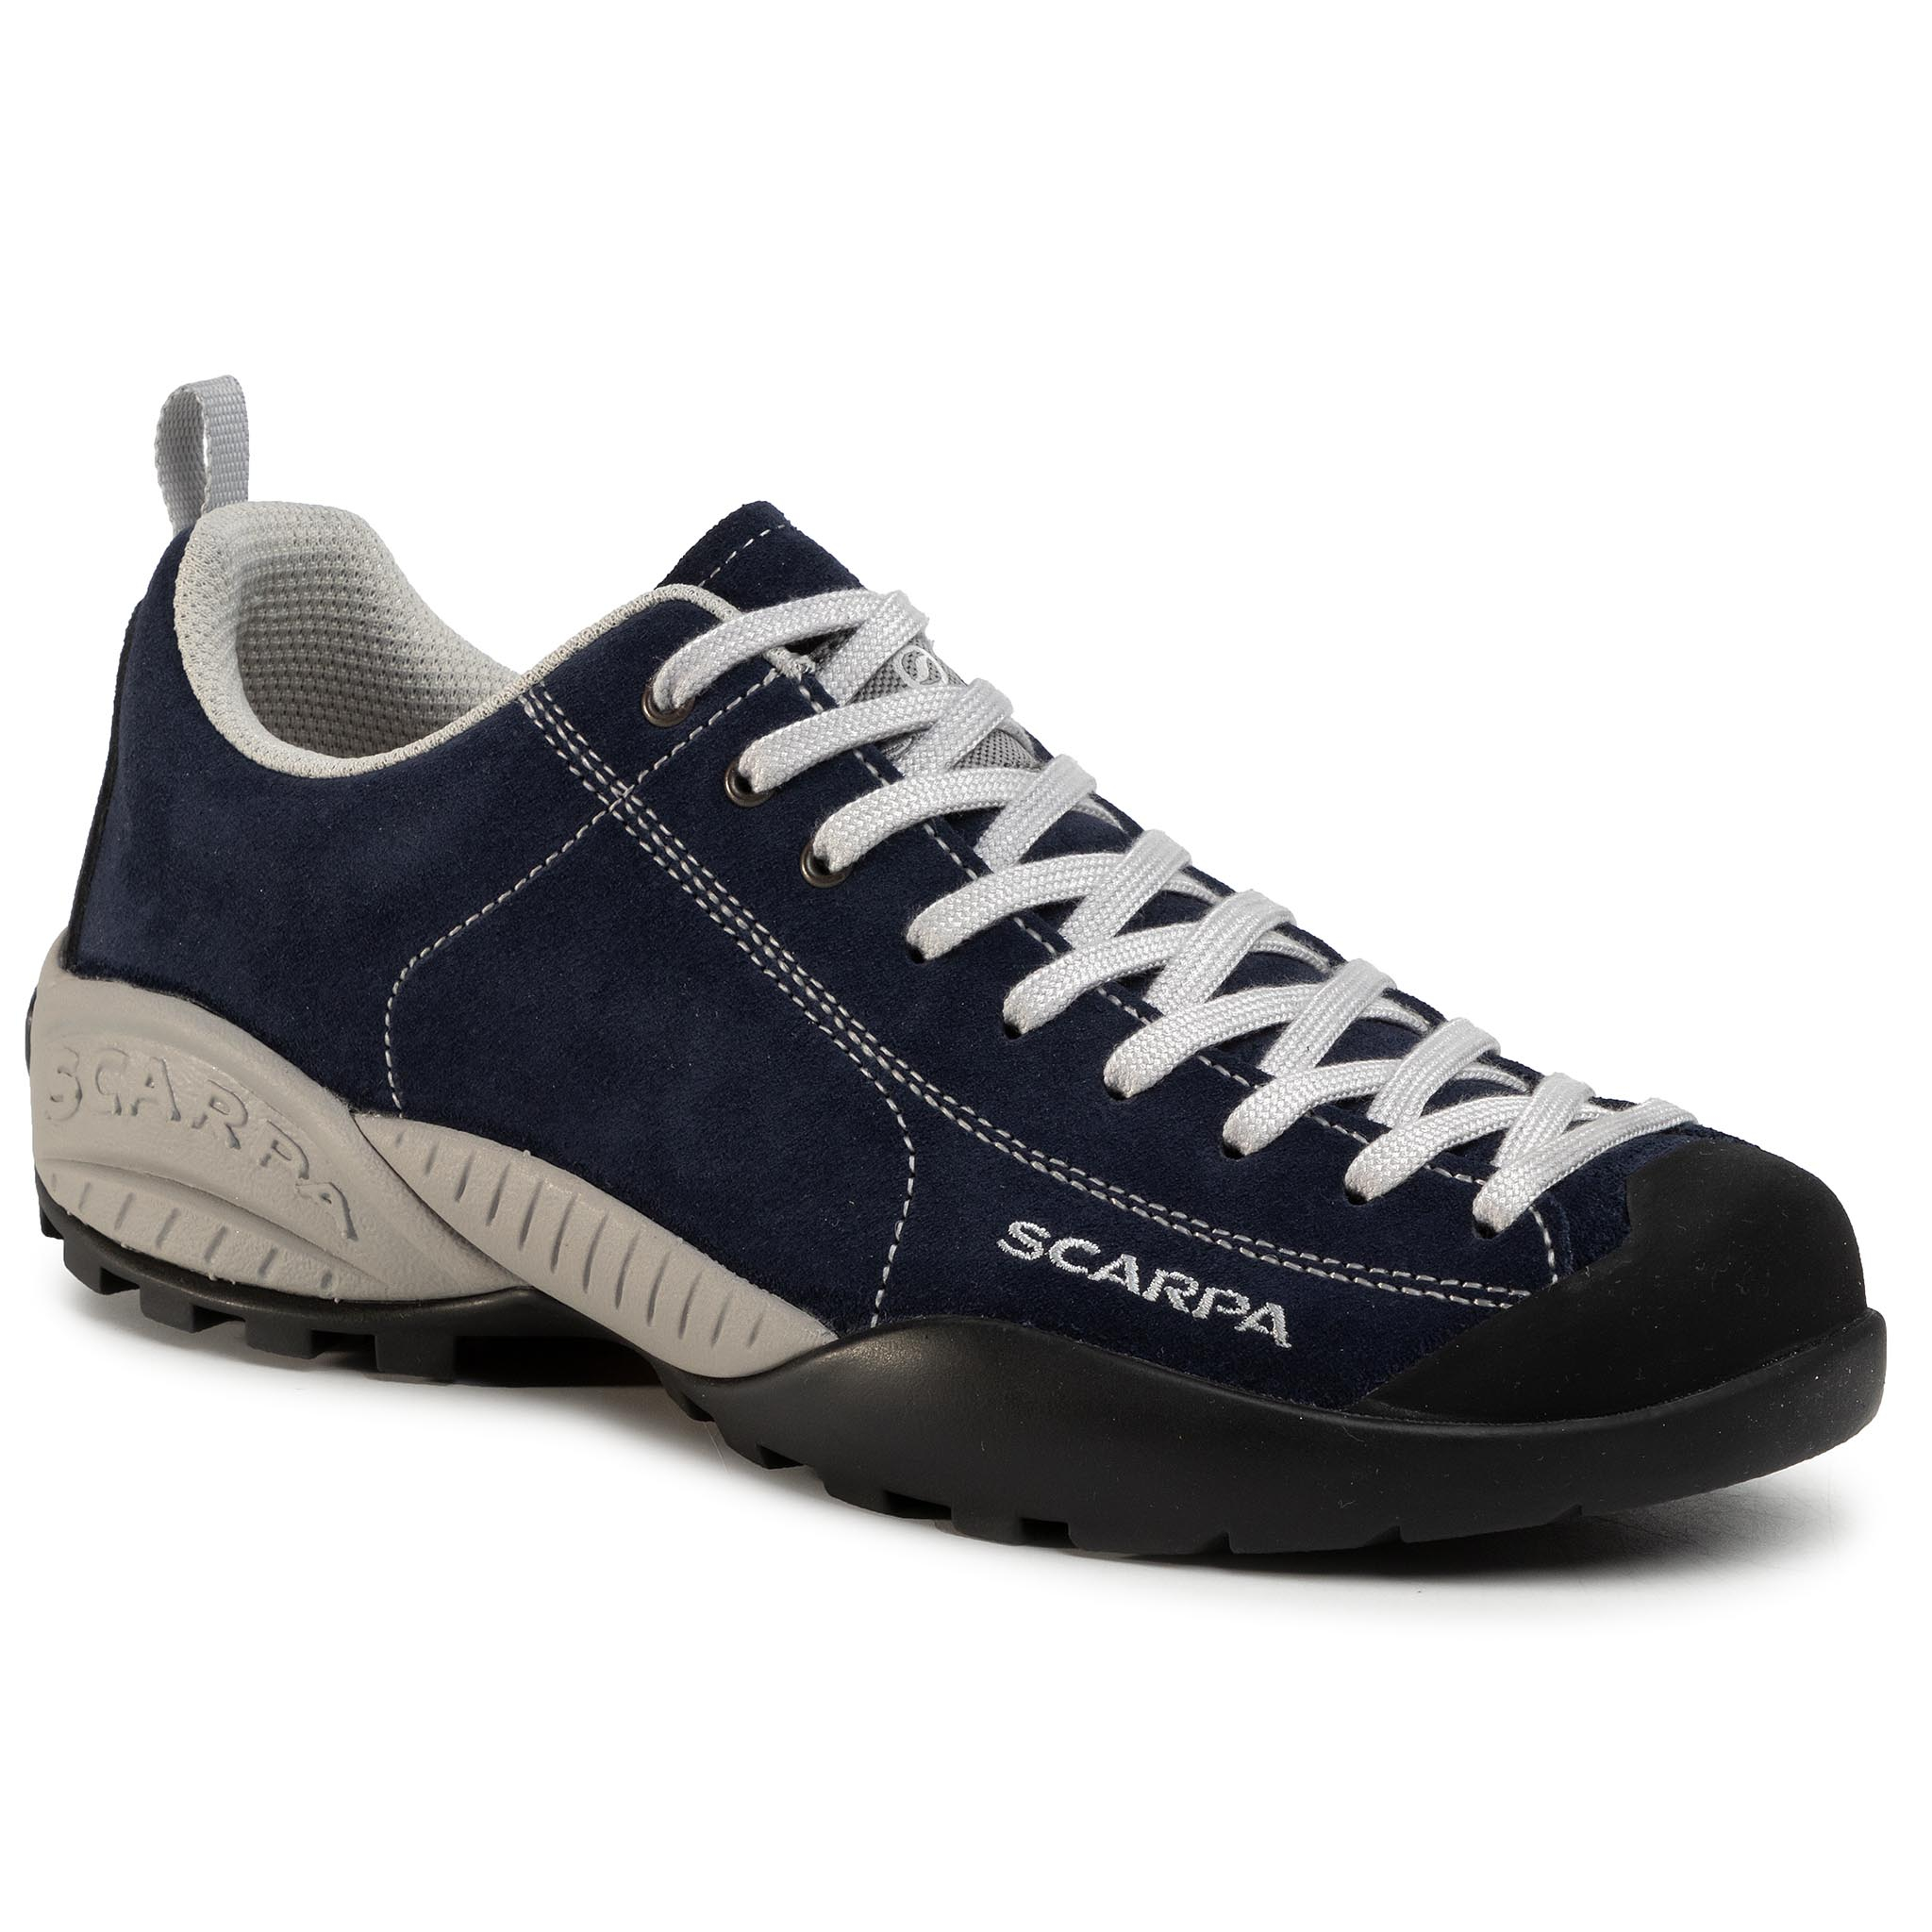 Trekkings Scarpa - Mojito 32605-350 Dark Blue imagine epantofi.ro 2021